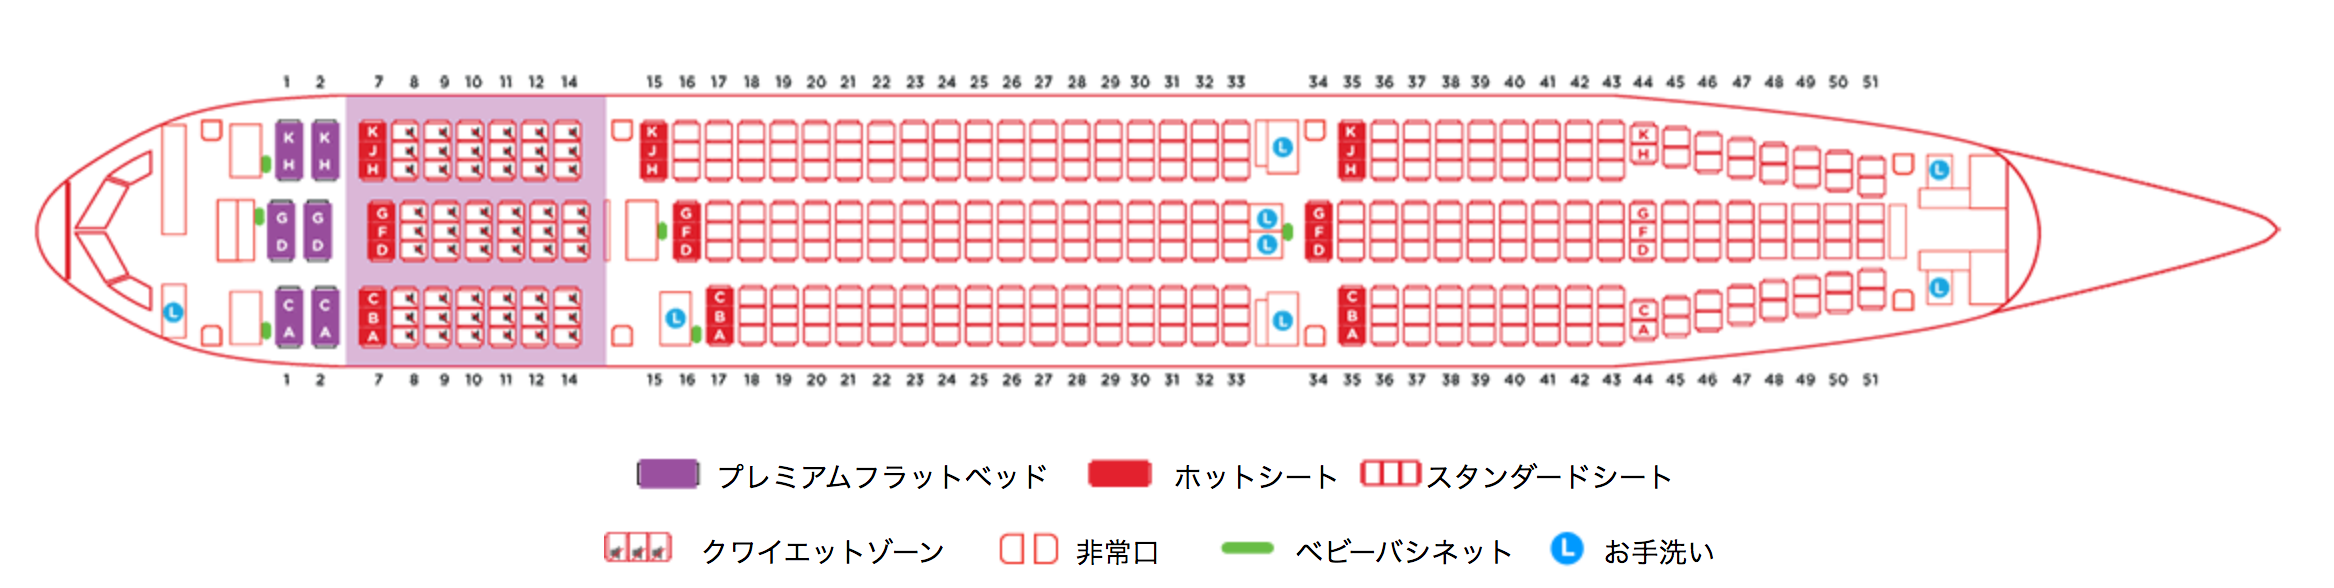 a330seatmapair.png